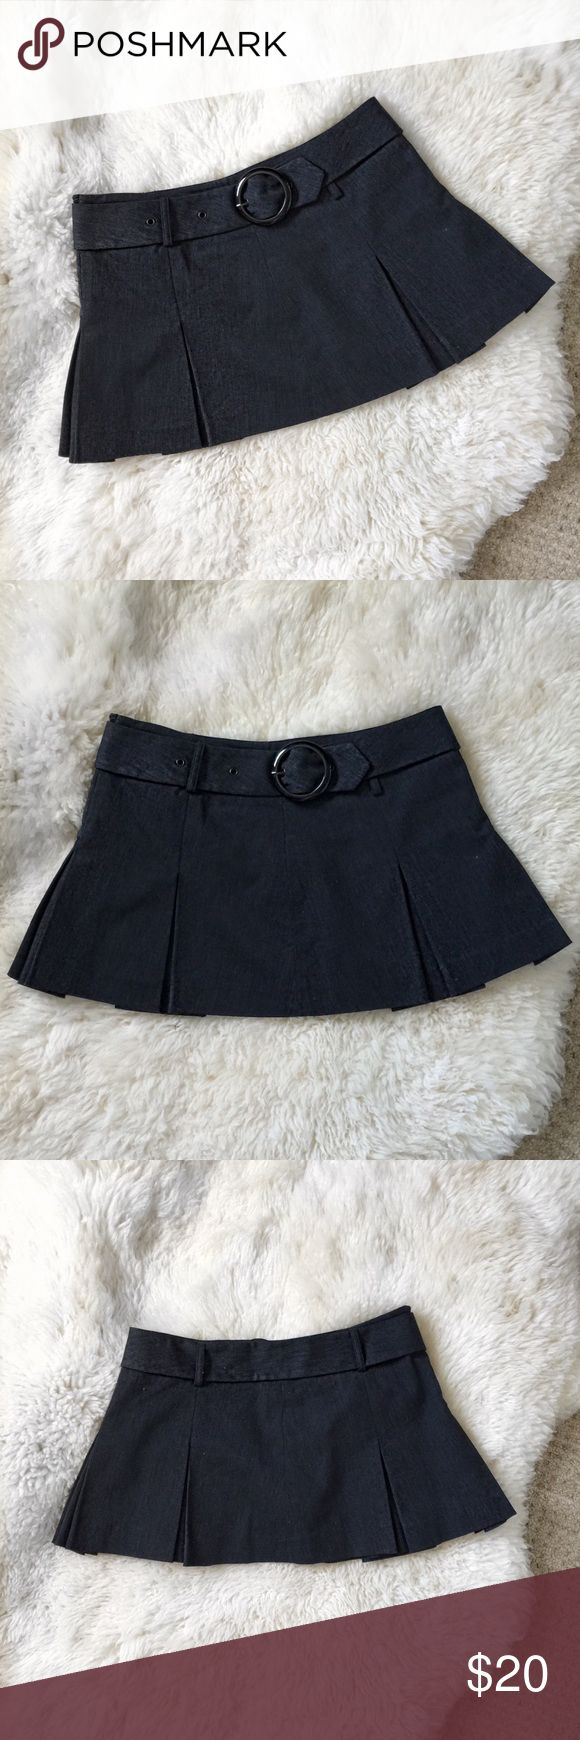 Black Pleated Mini Skirt Size Medium Black Belted & Pleated Mini Skirt. By Papaya. Color is between black and dark gray. Shiny Round buckle. Only worn once. Cotton blend. Machine wash. Size Medium. Papaya Skirts Mini